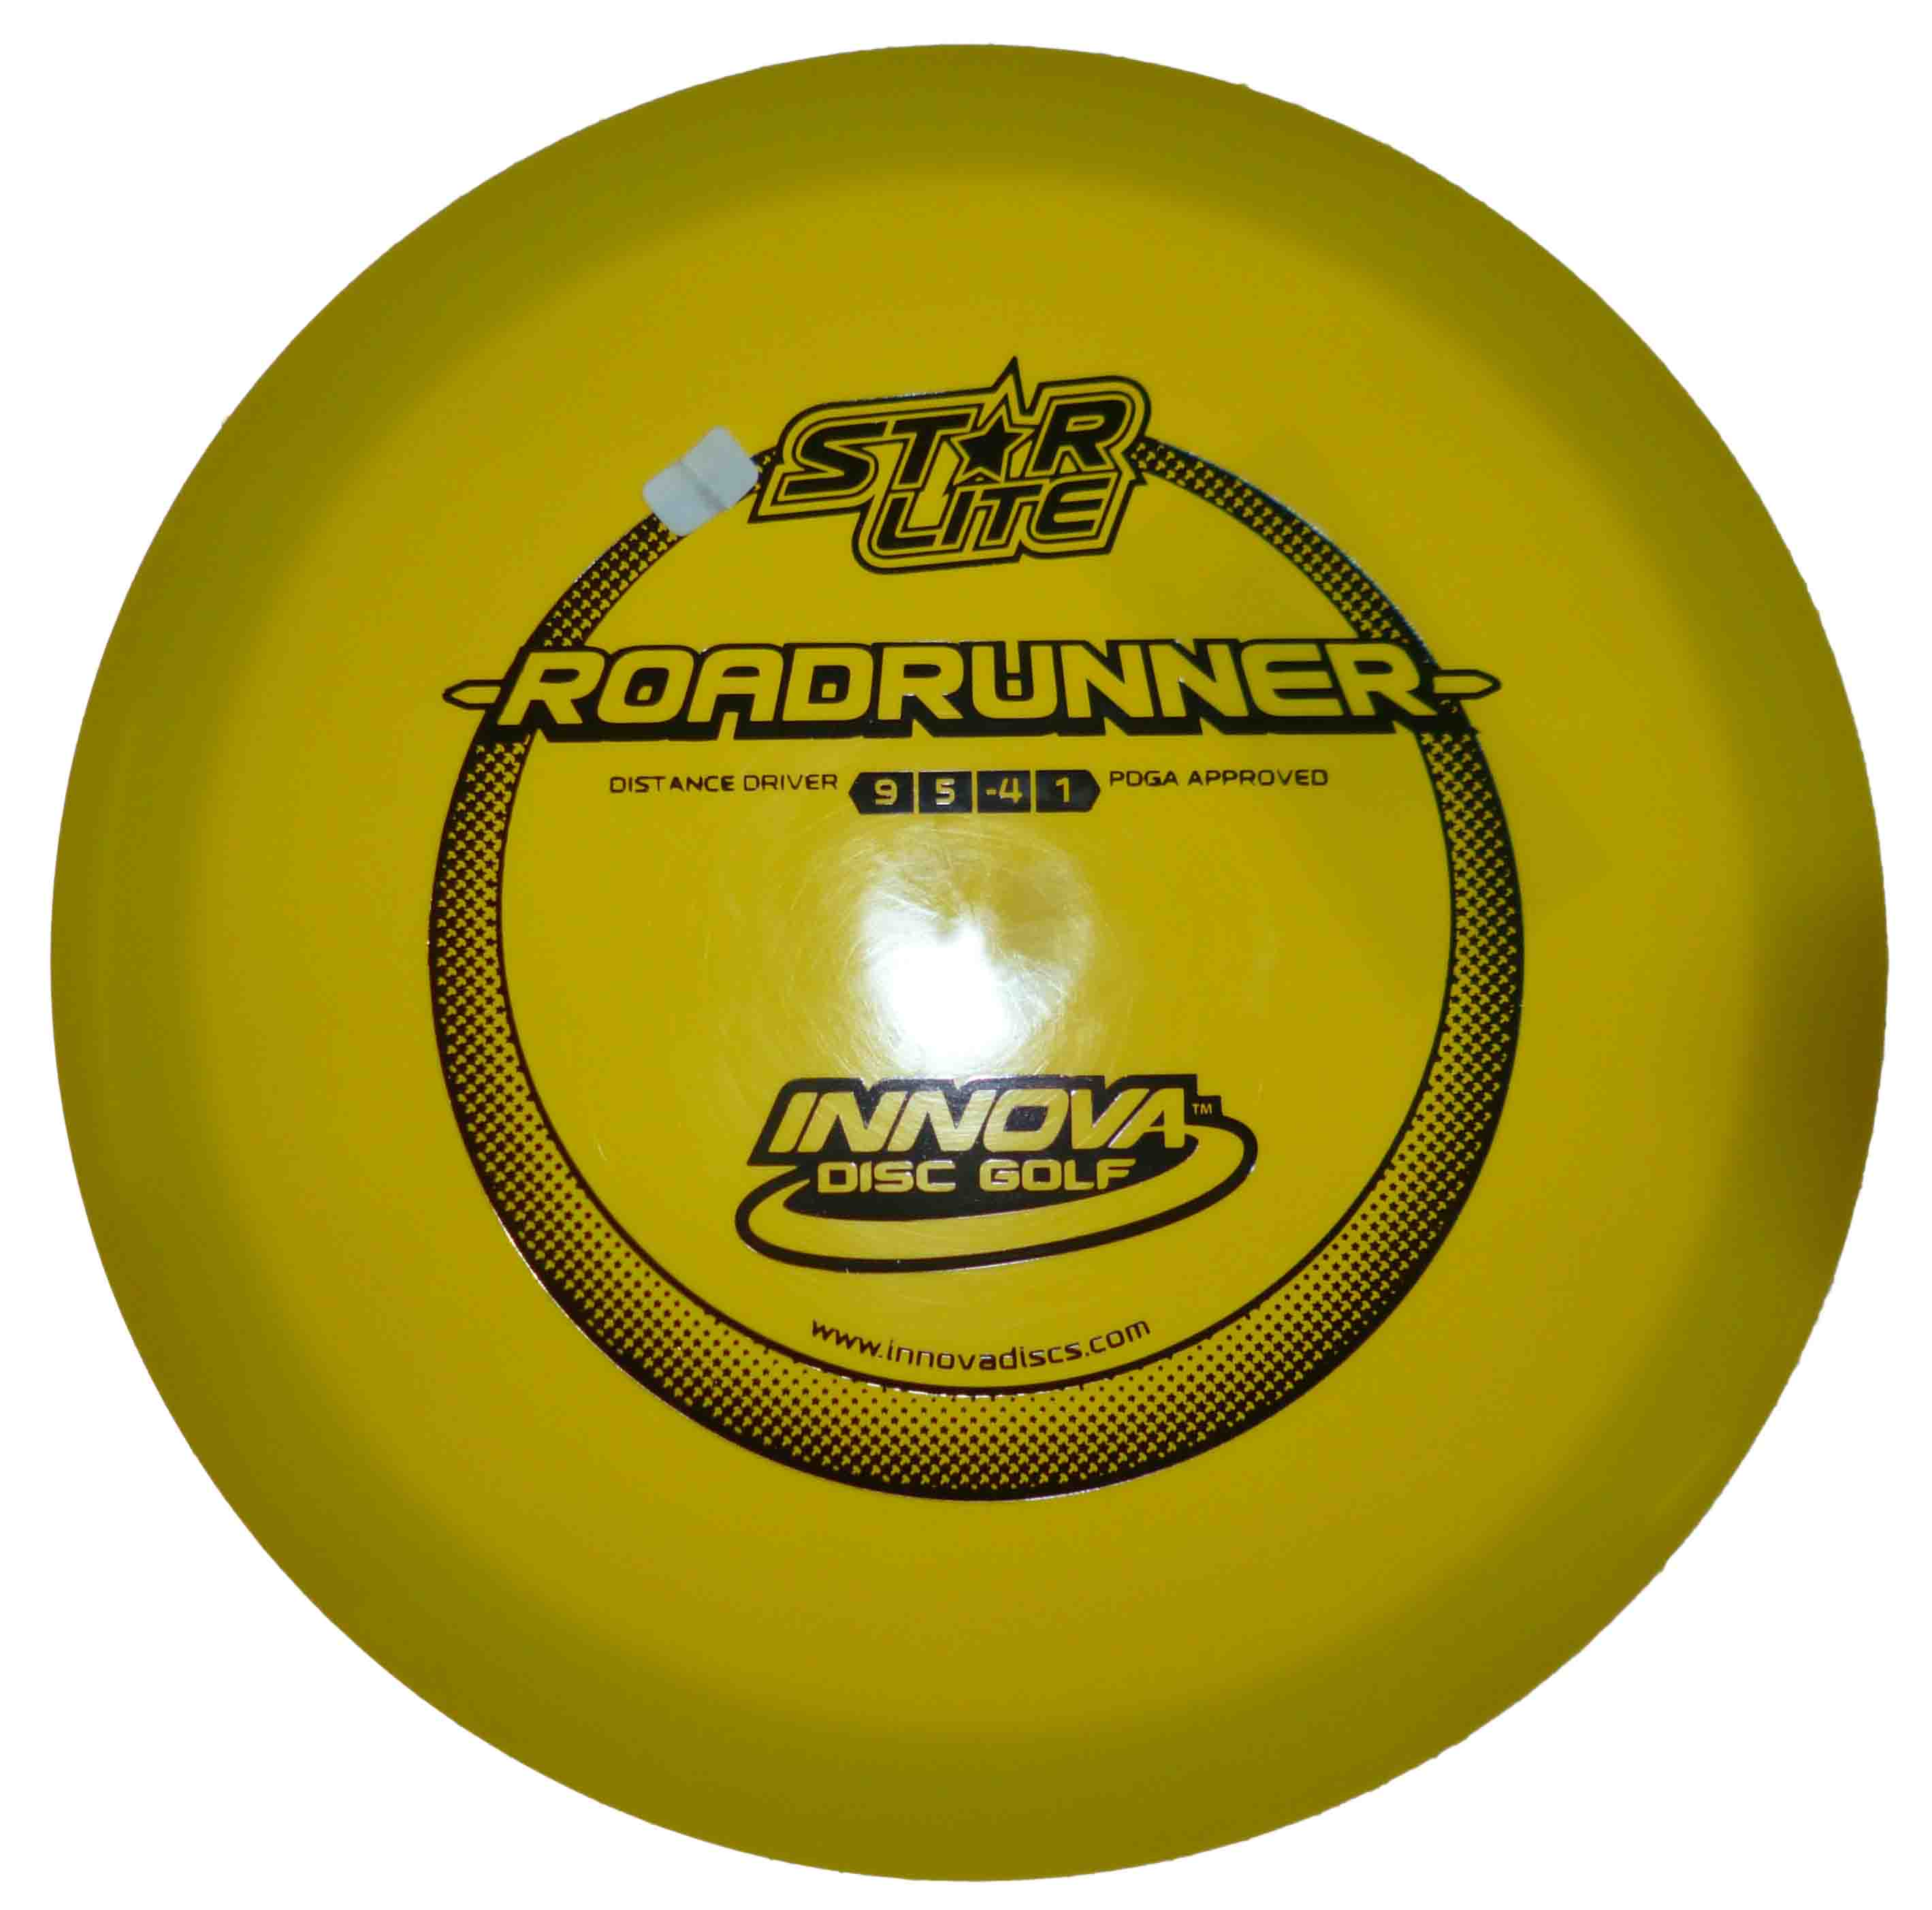 Roadrunner Star lite gelb